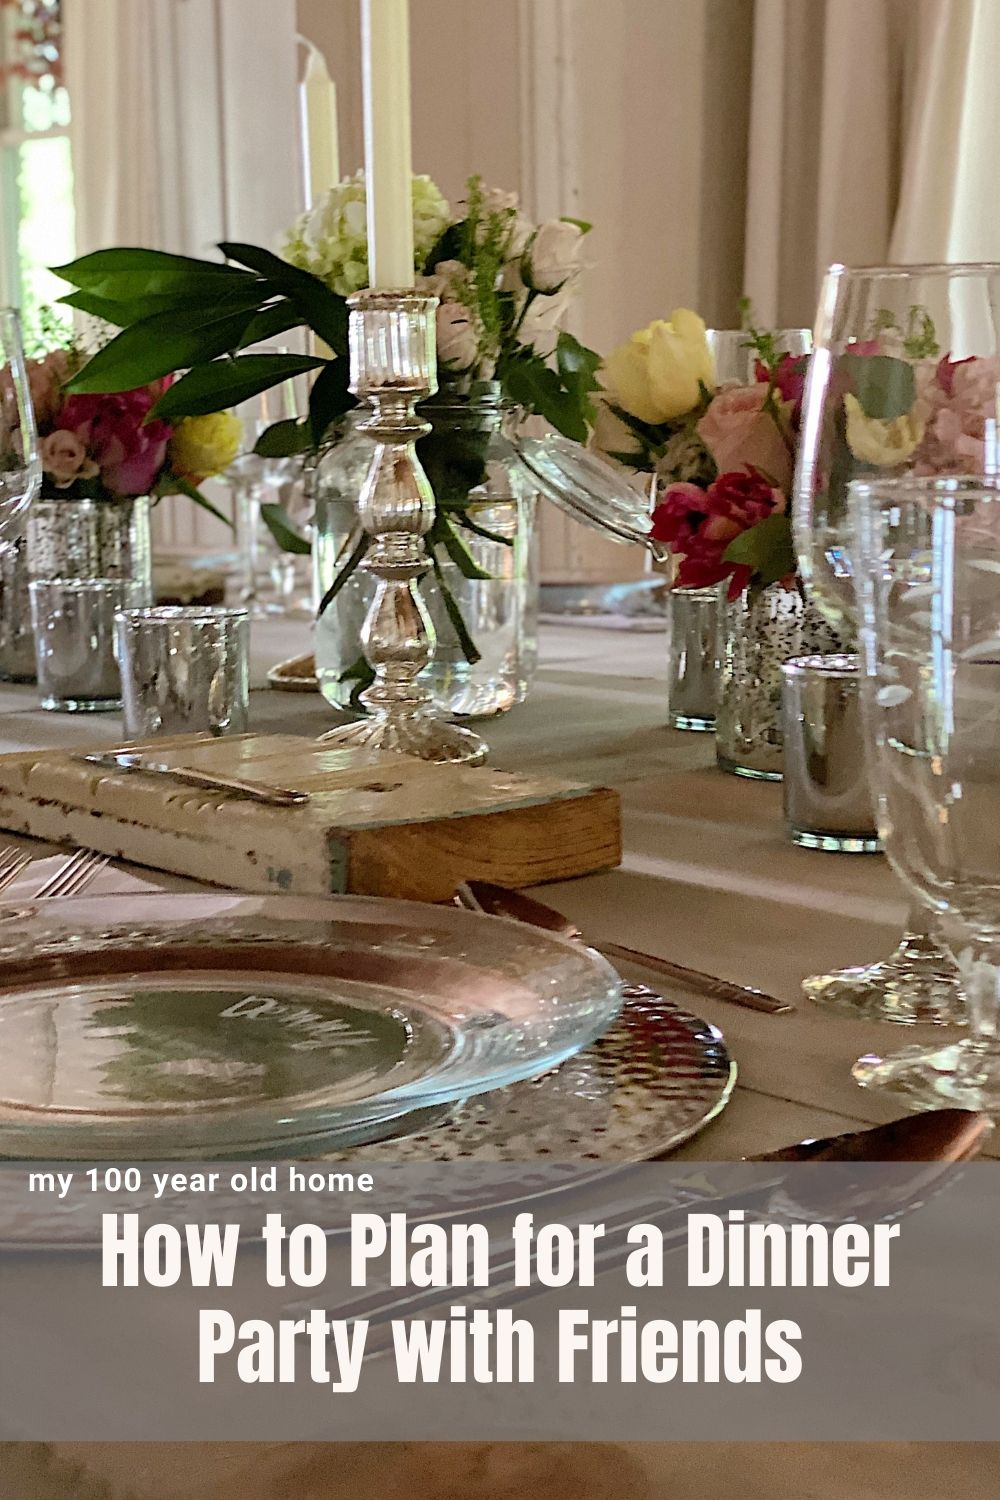 Last weekend I hosted twelve very dear friends and family members for a dinner party. I loved every minute of it and am very excited to share with all of you how to plan for a dinner party.